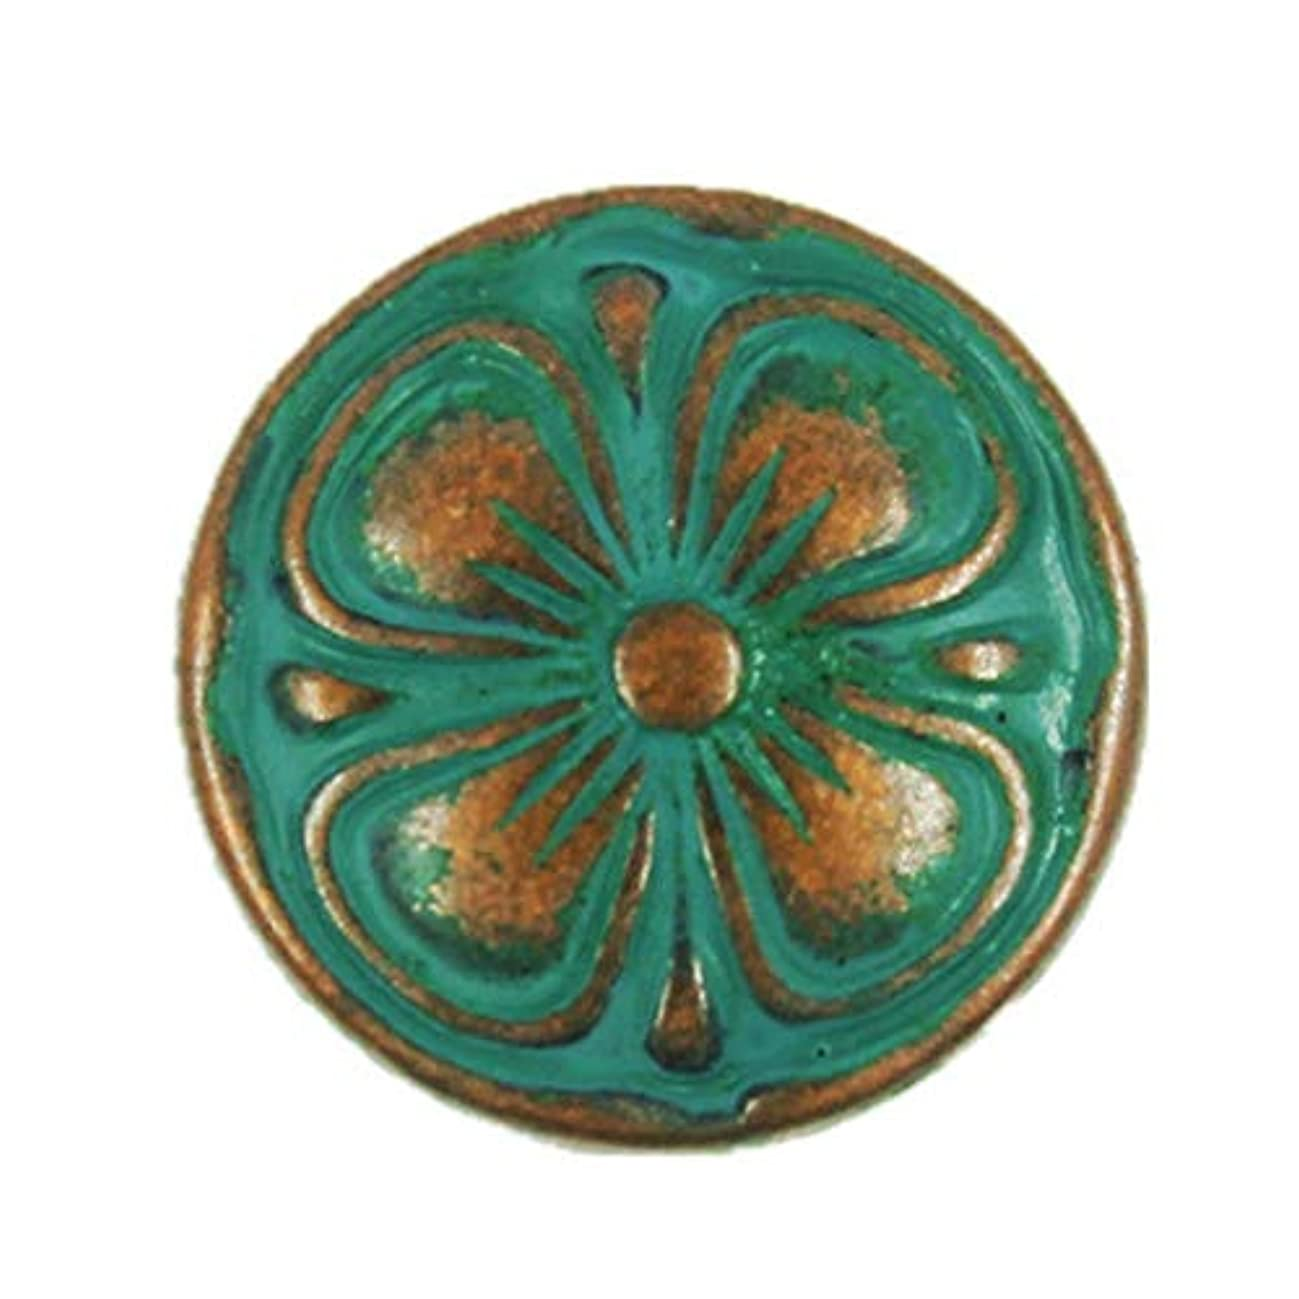 Bezelry 12 Pieces Antique Copper Clover Metal Shank Buttons in Deep Cyan Color. 15mm